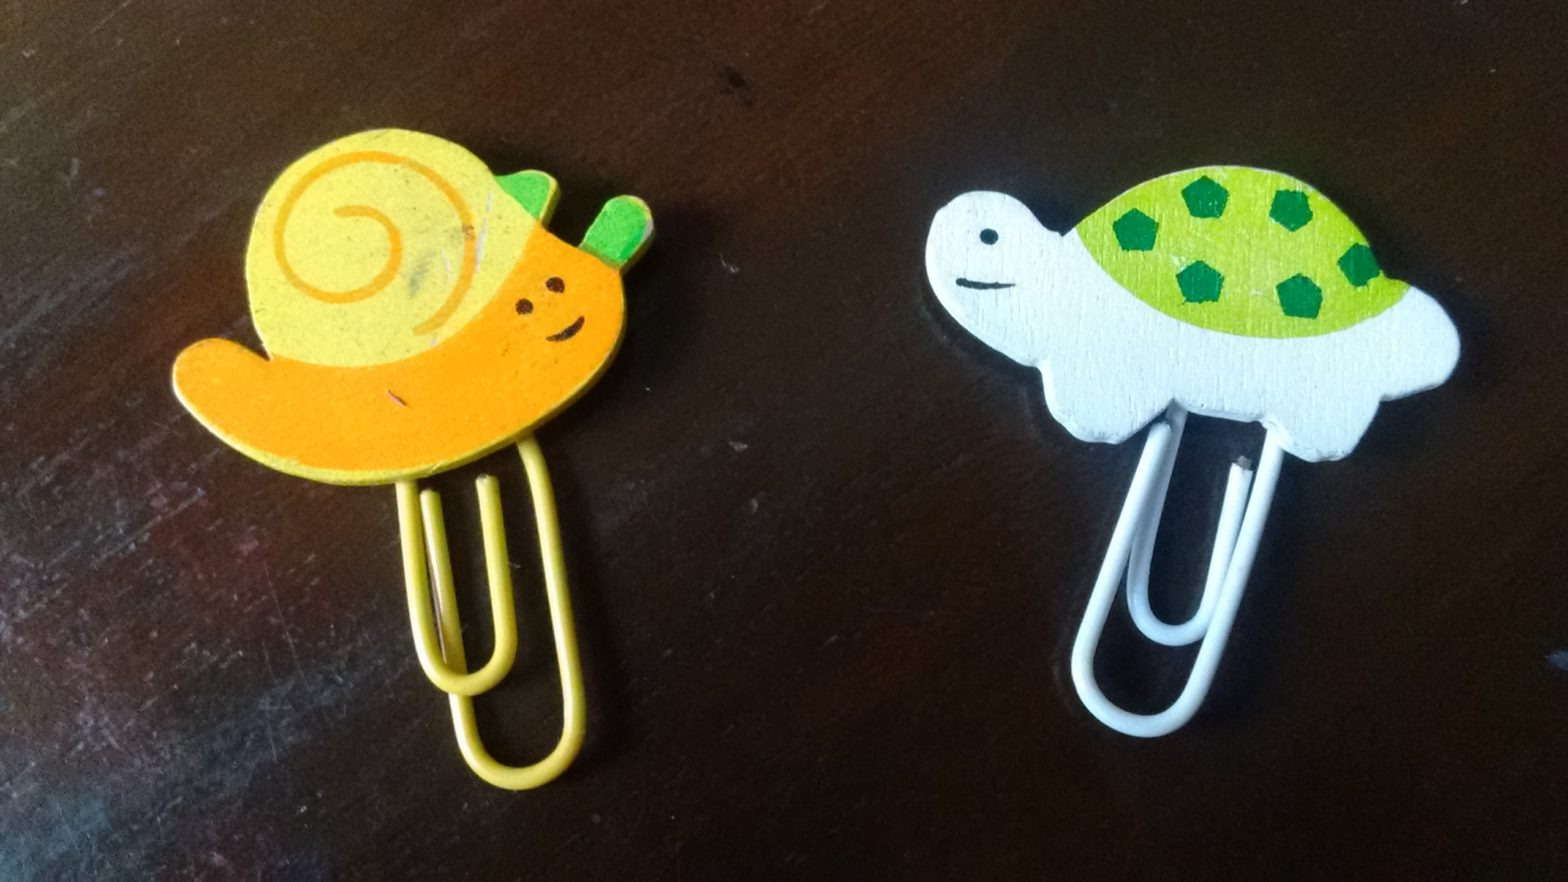 The Snail and The Tortoise